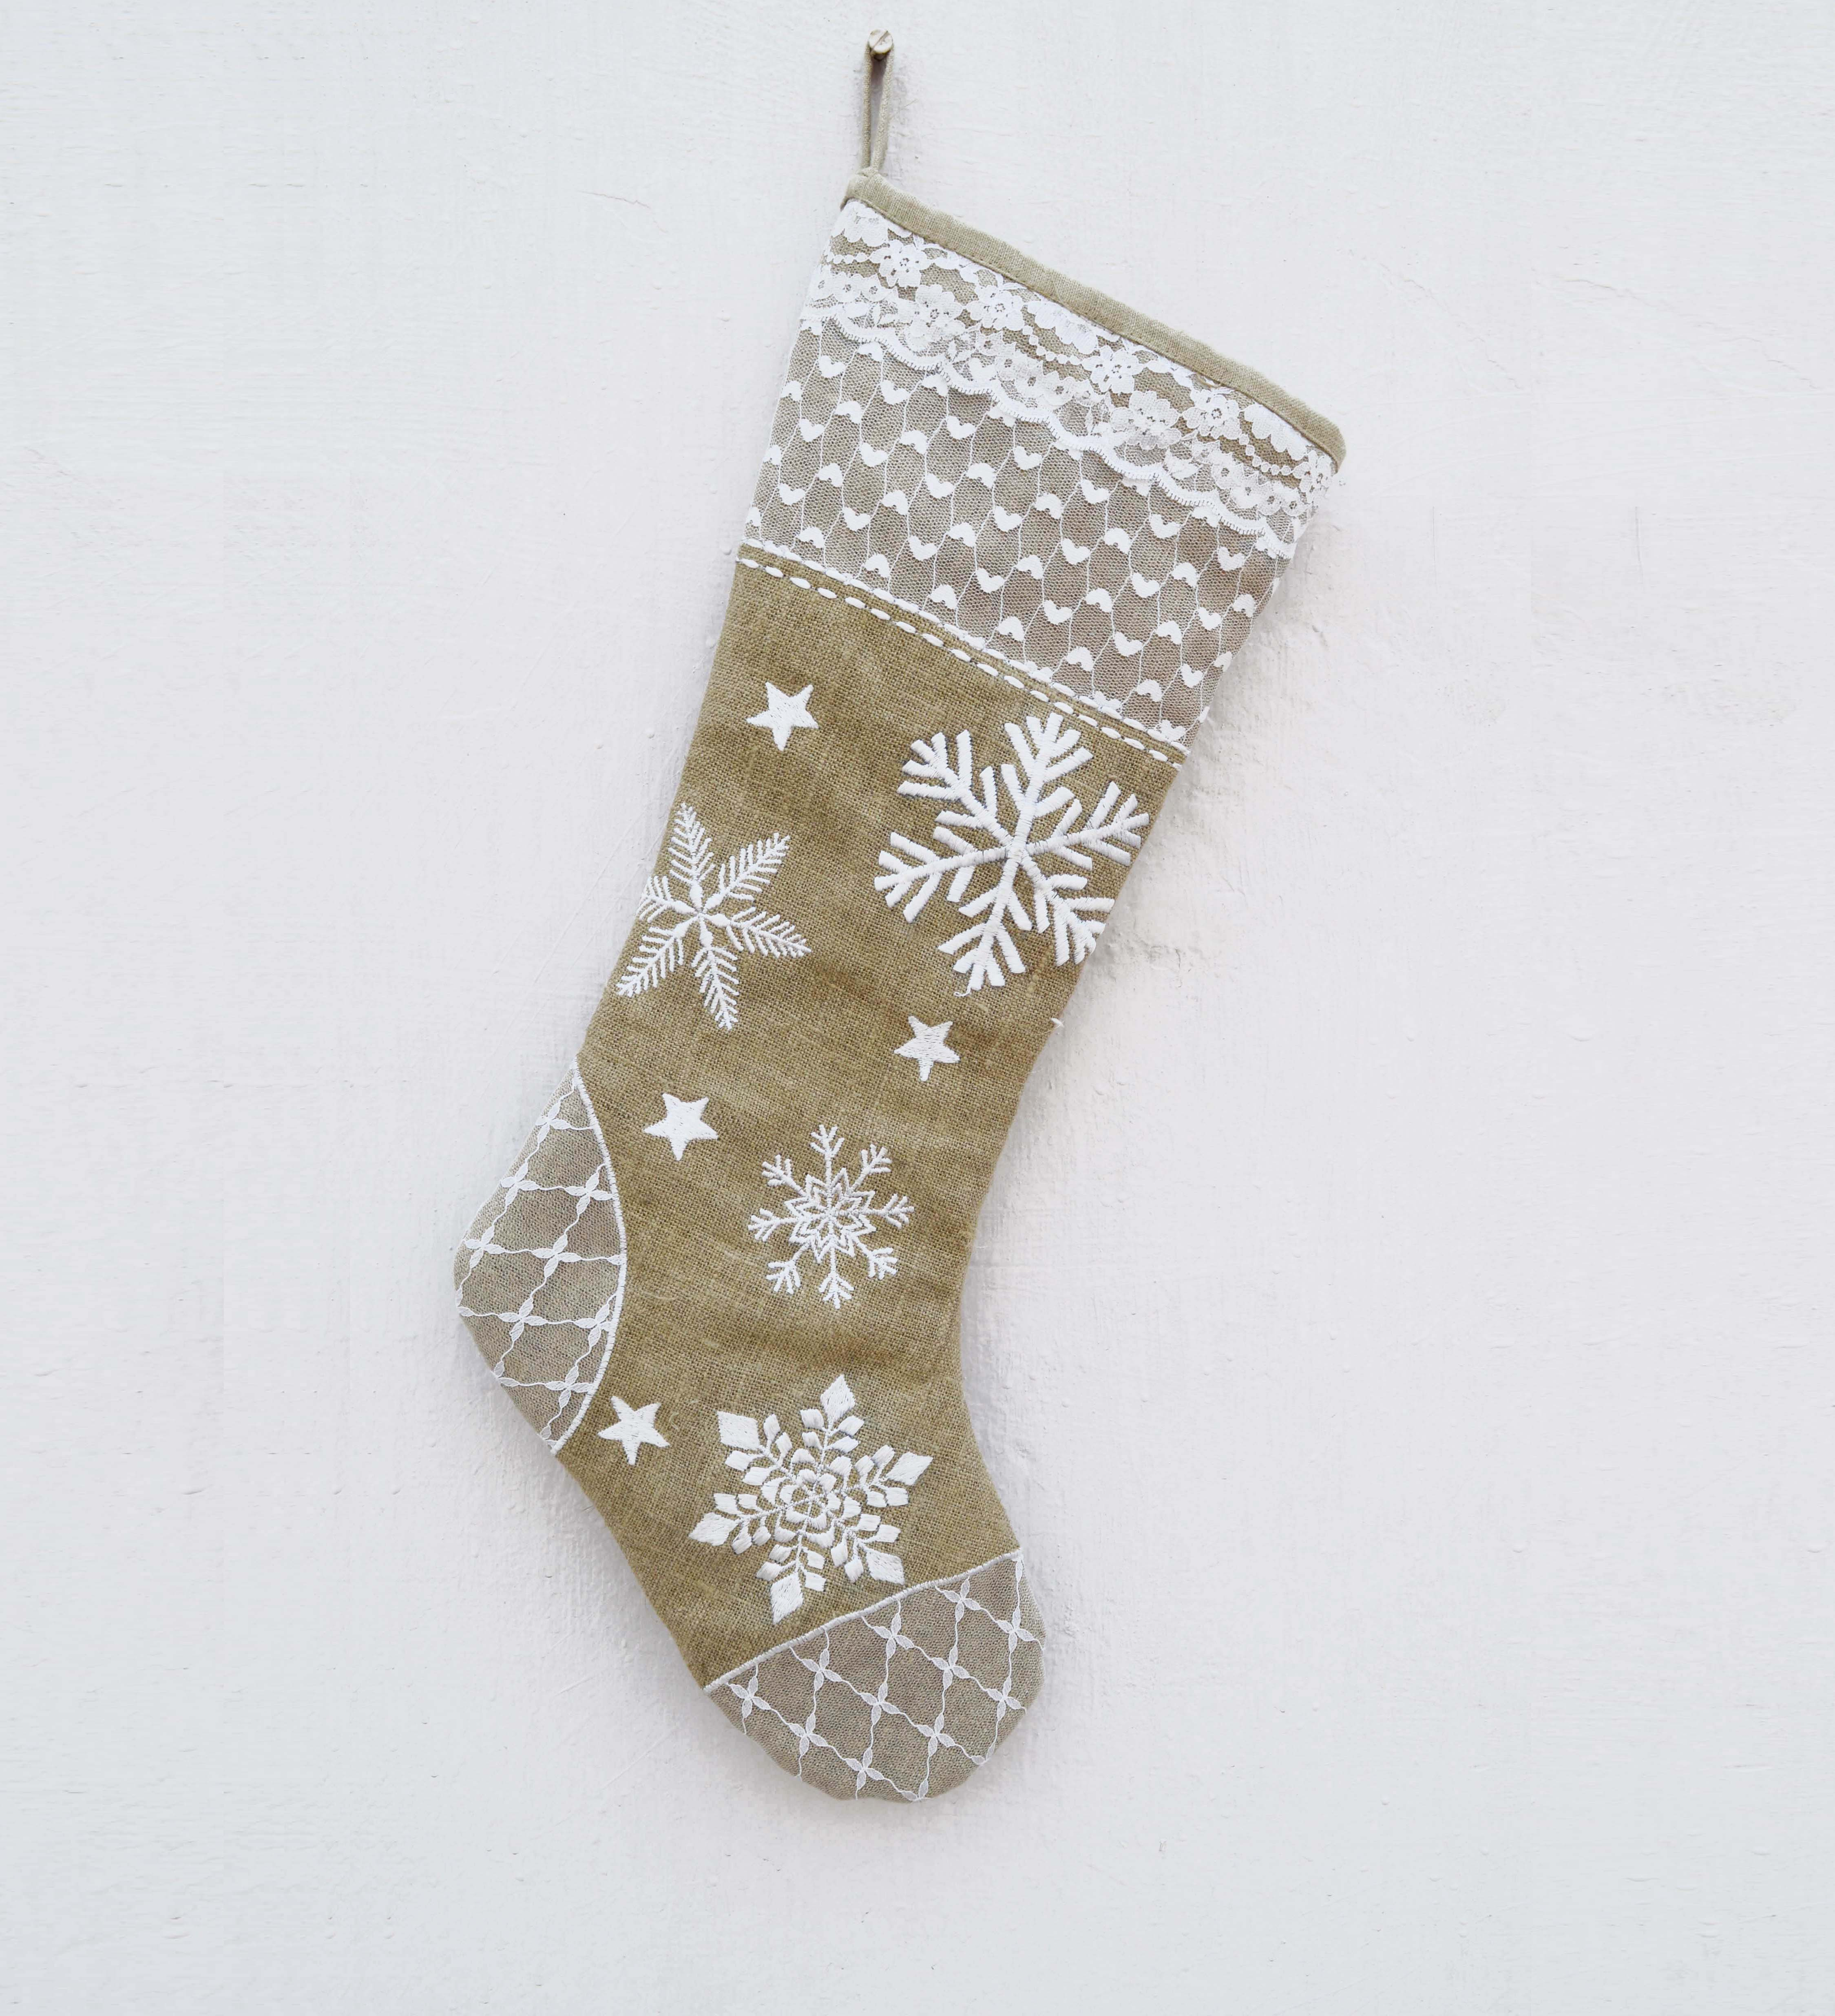 Christmas stocking, linen and lace, natural and white color, rustic decor, embroidered stocking